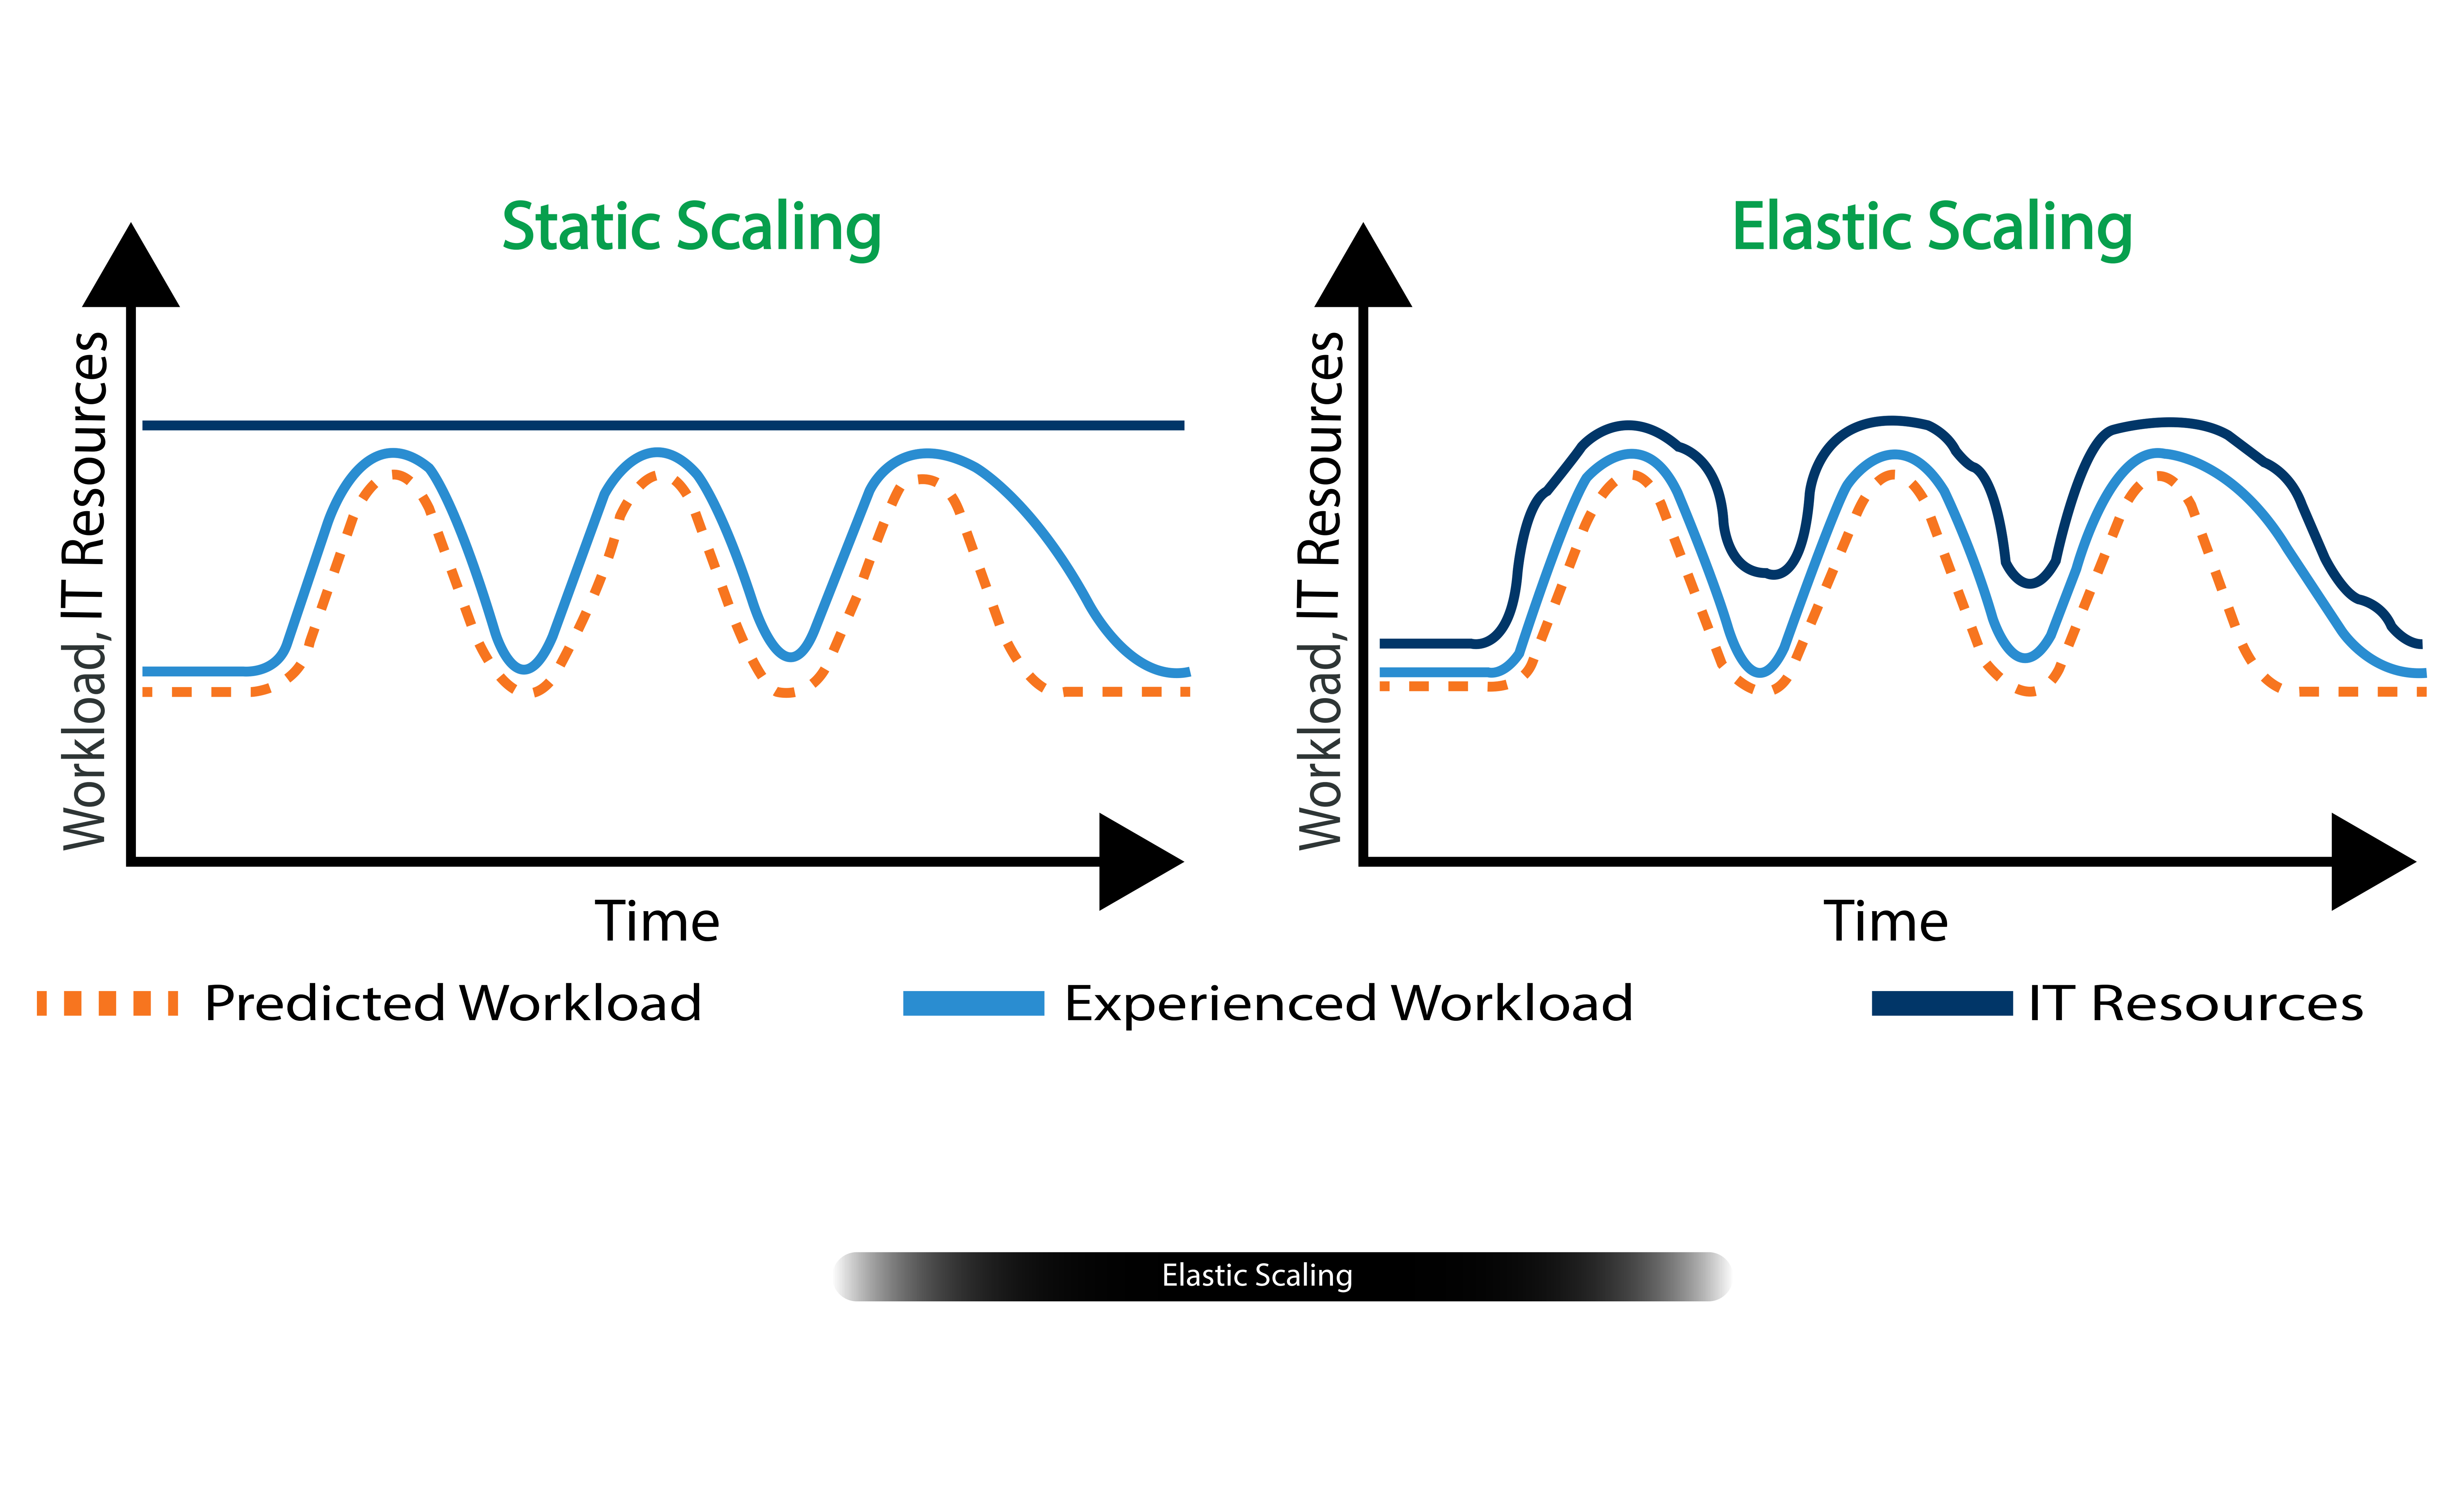 Figure-3, Elastic Scaling